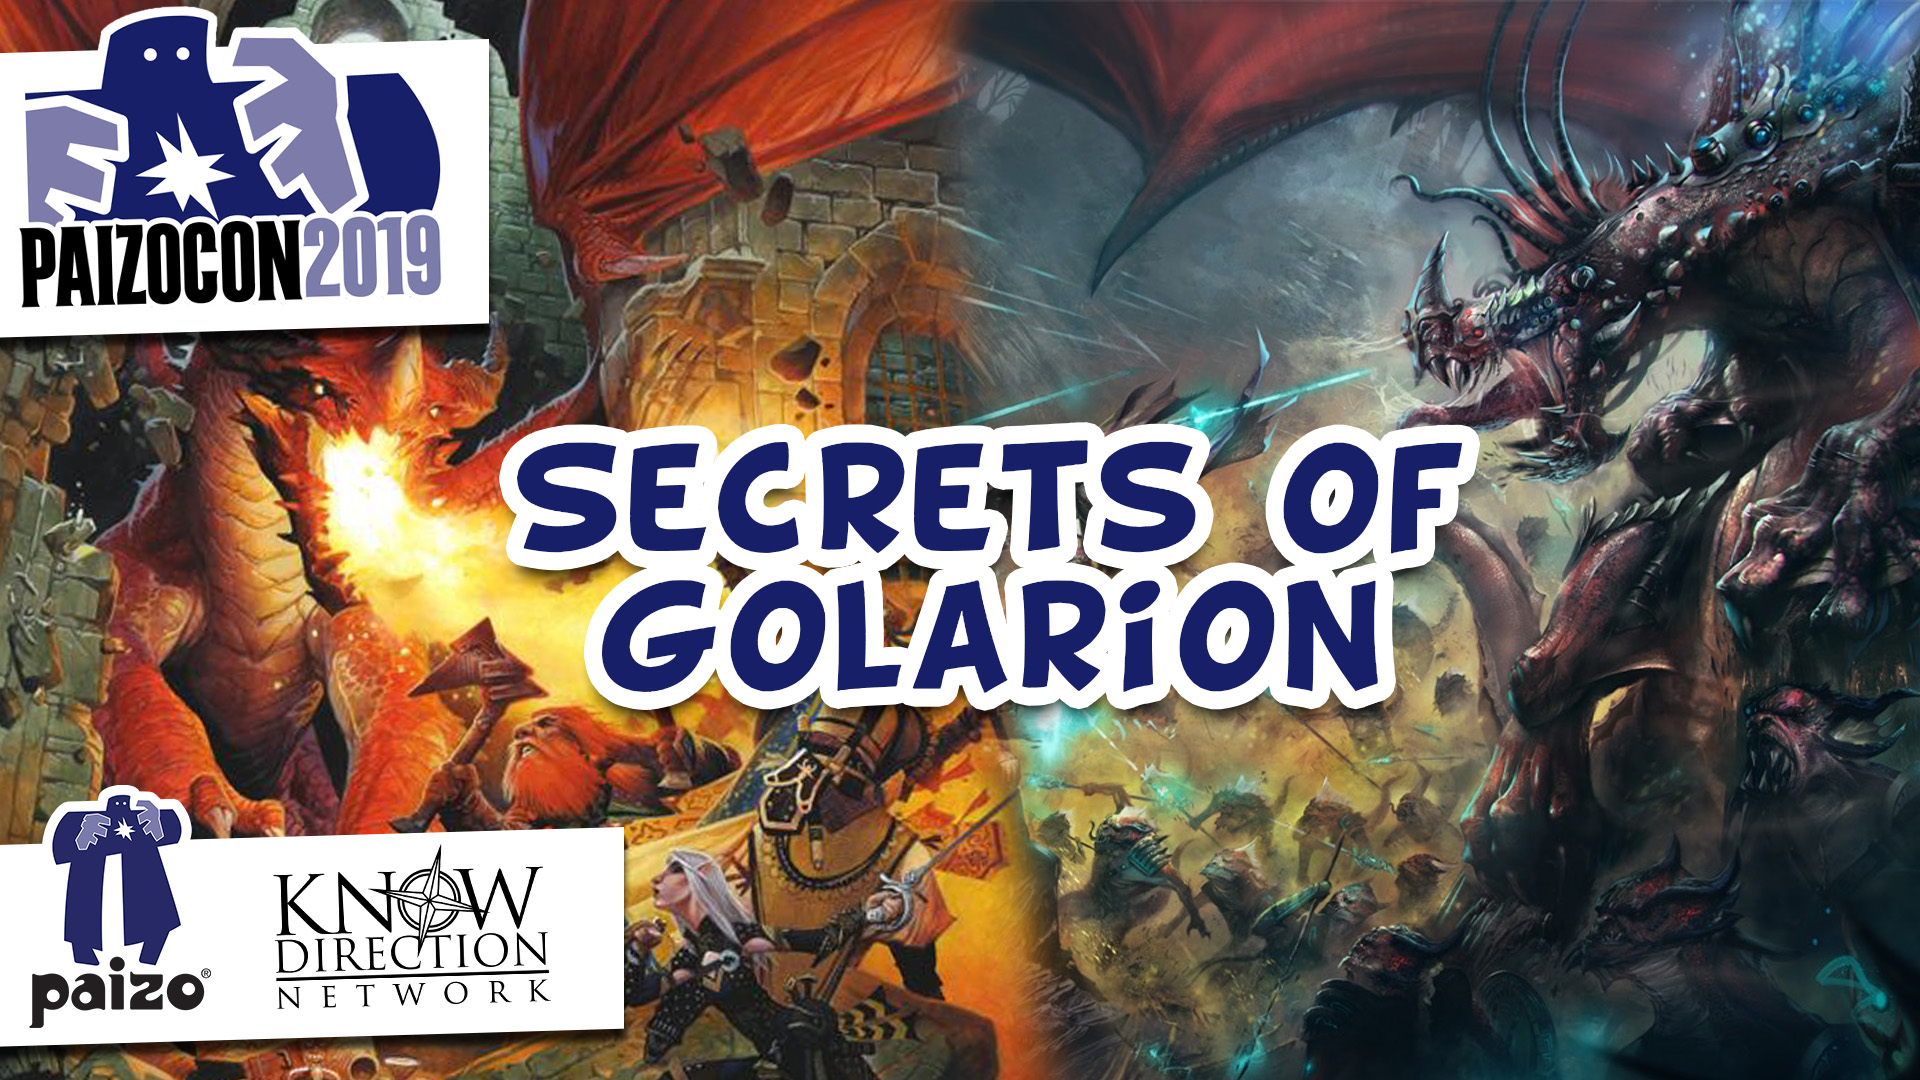 PaizoCon 2019 - Secrets of Golarion